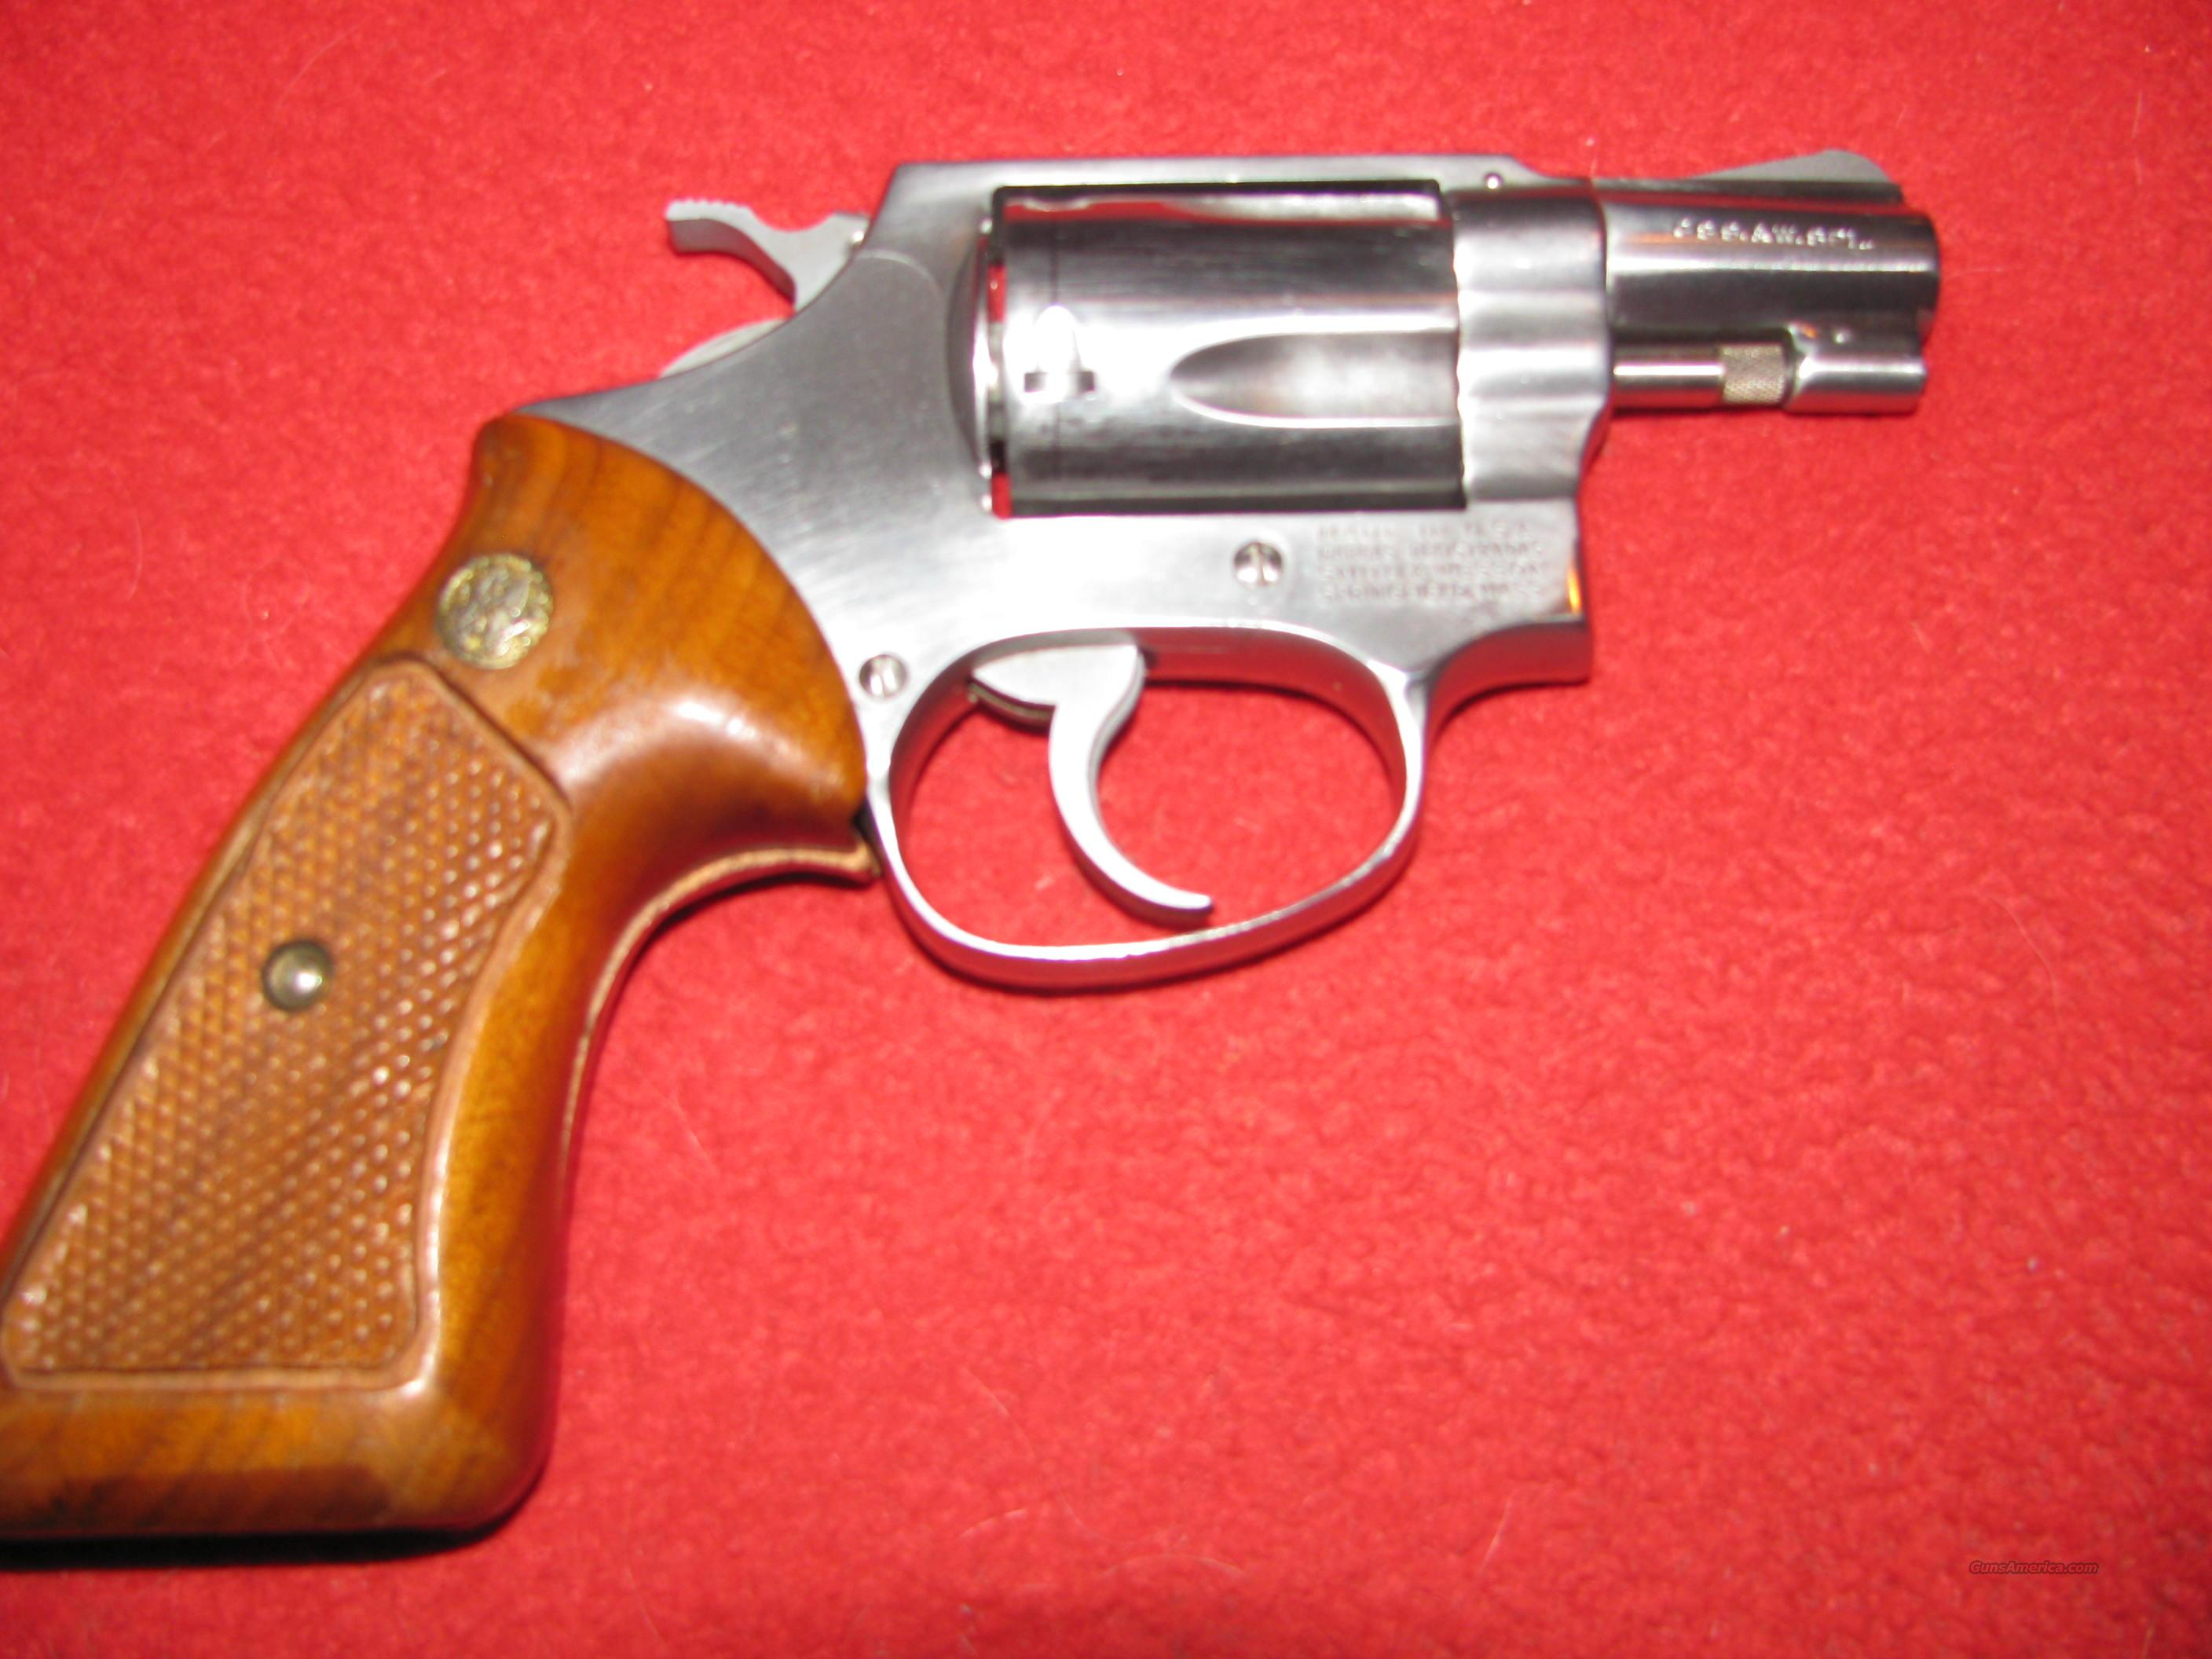 Smith and Wesson Model 60  Guns > Pistols > Smith & Wesson Revolvers > Pocket Pistols